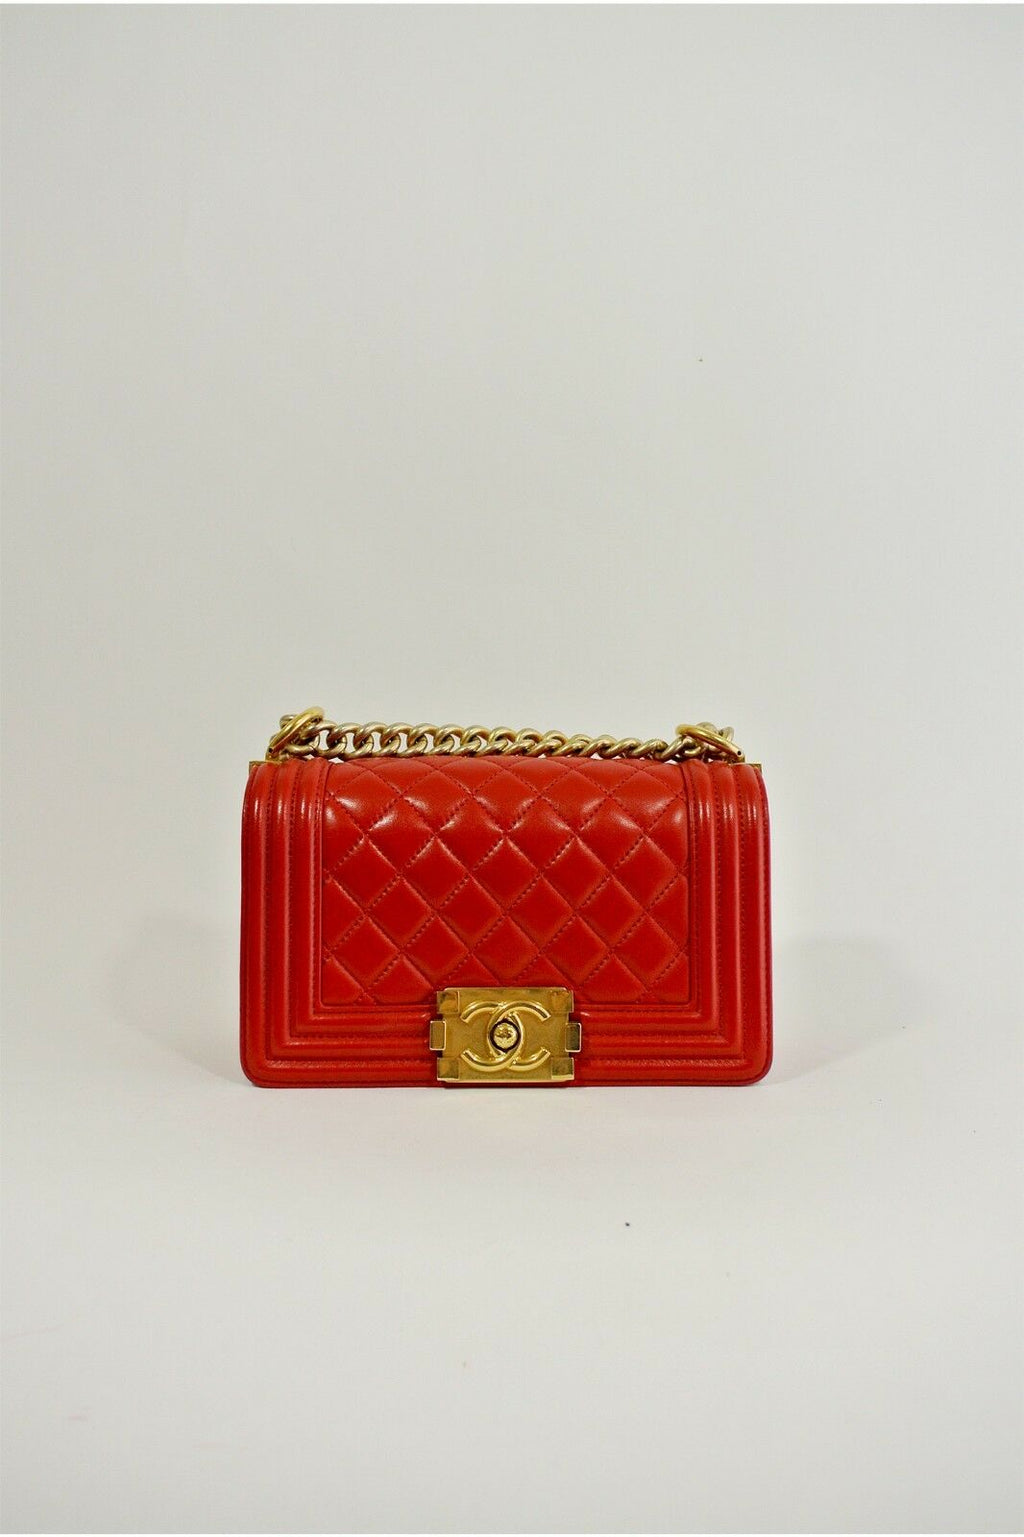 Chanel Small Boy Bag Crimson Red